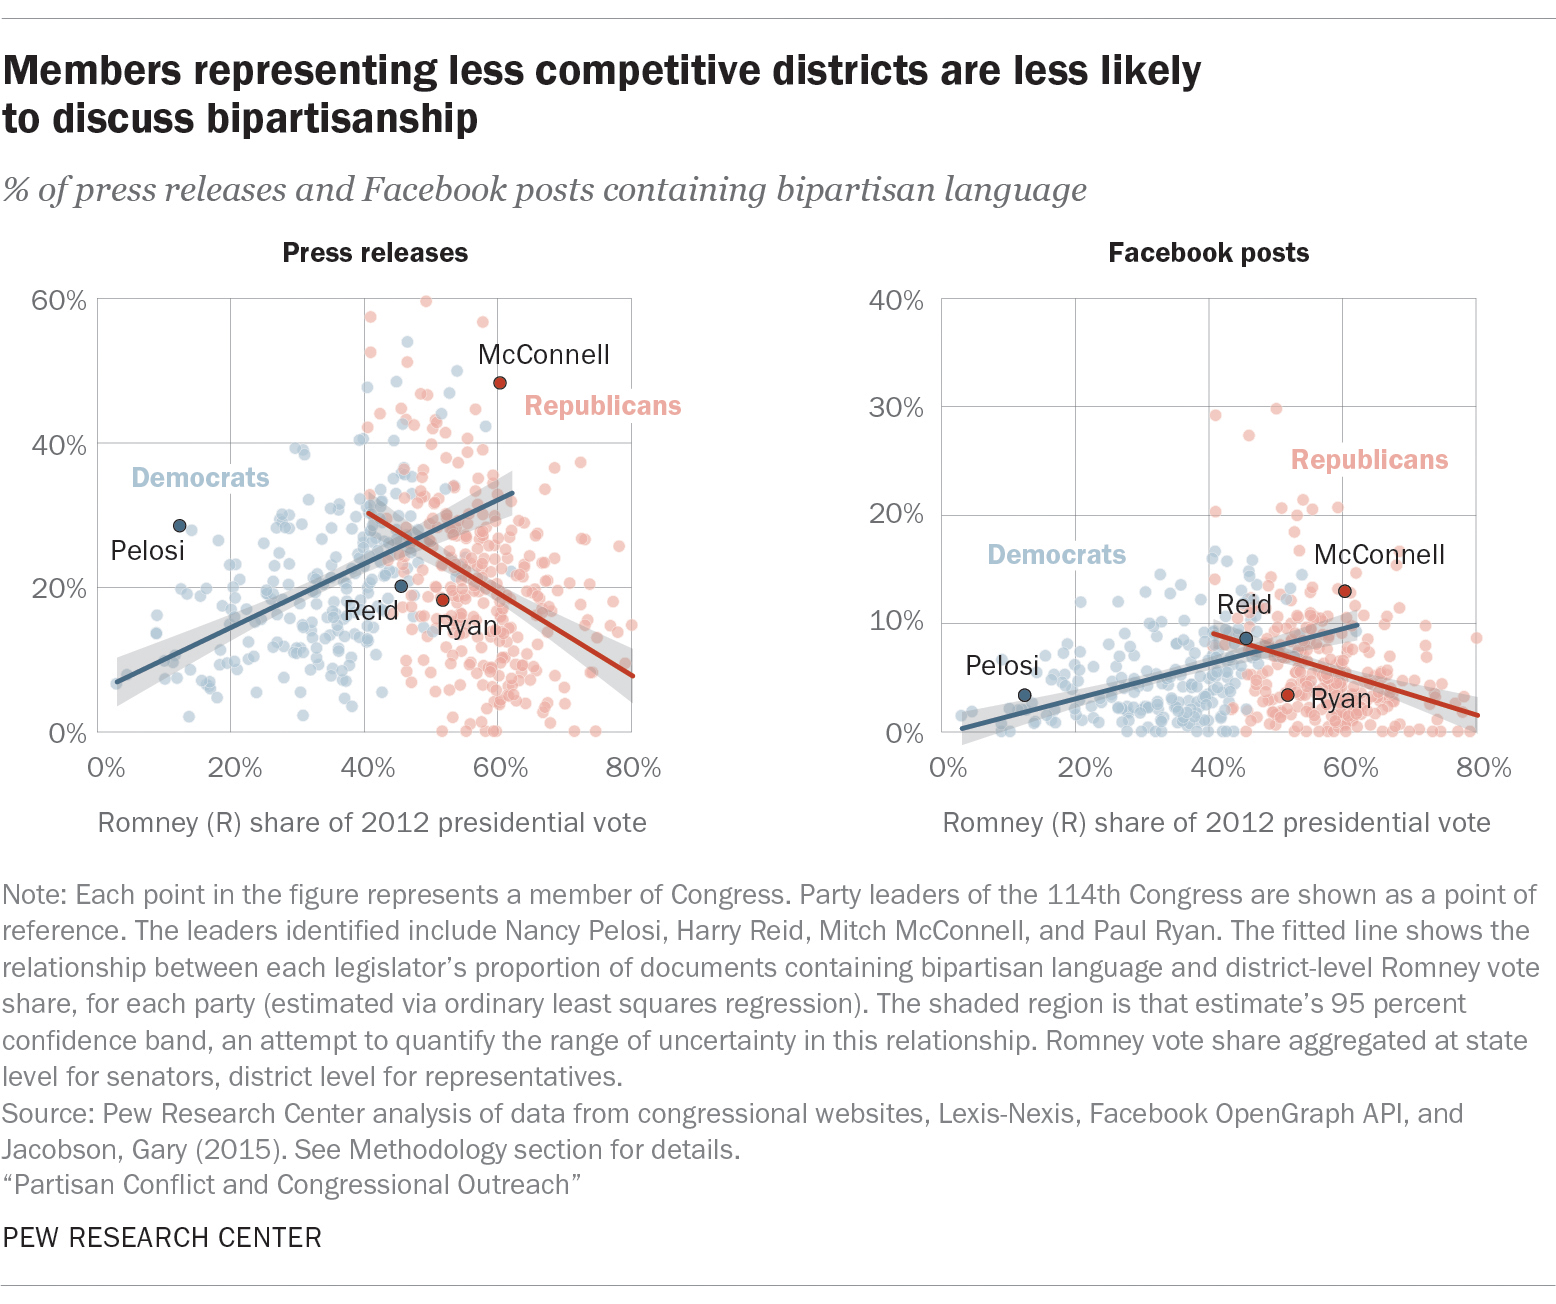 Members representing less competitive districts most likely to discuss bipartisanship